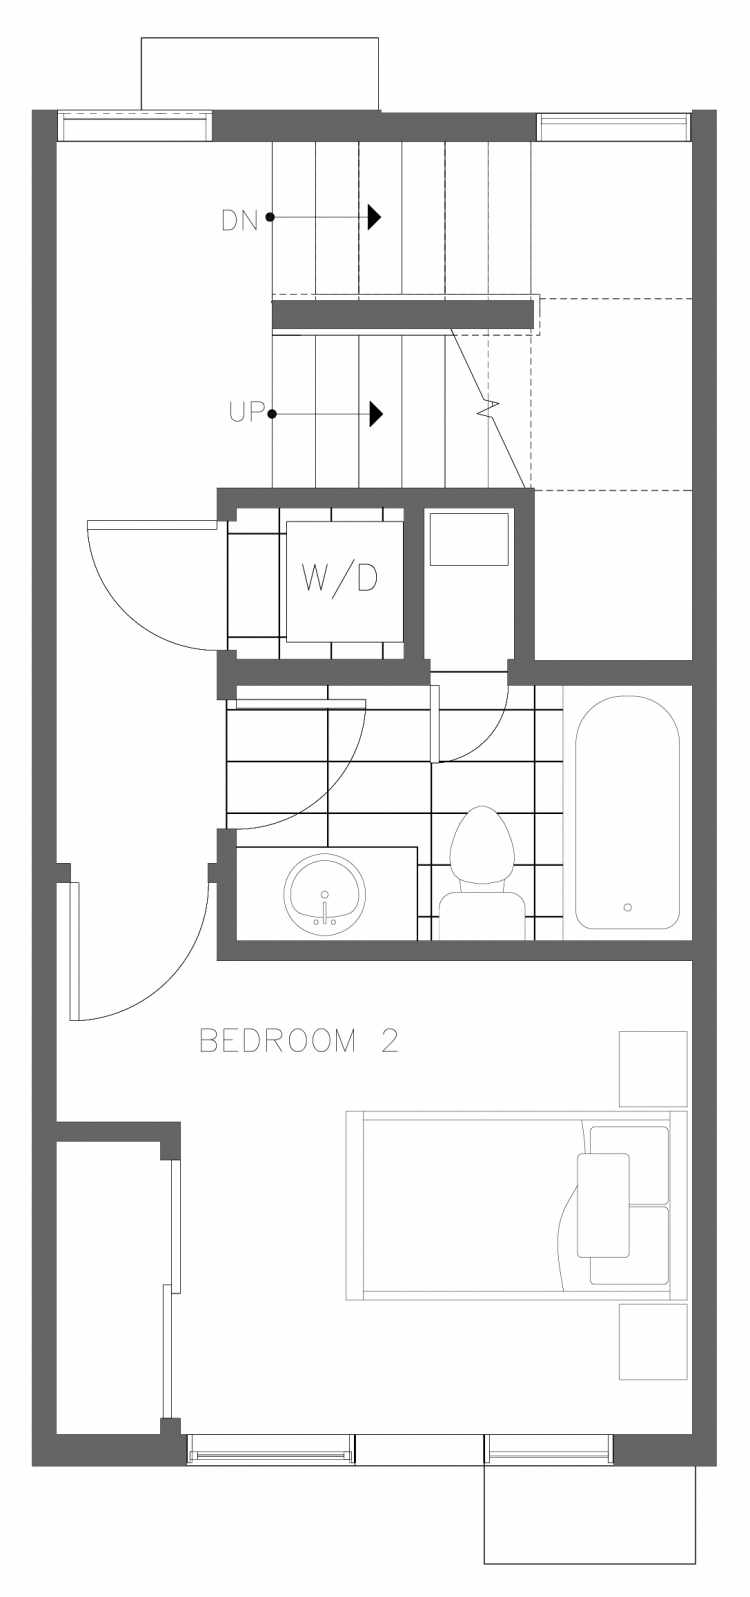 Second Floor Plan of 1730B 11th Ave, One of the Altair Townhomes in Capitol Hill by Isola Homes